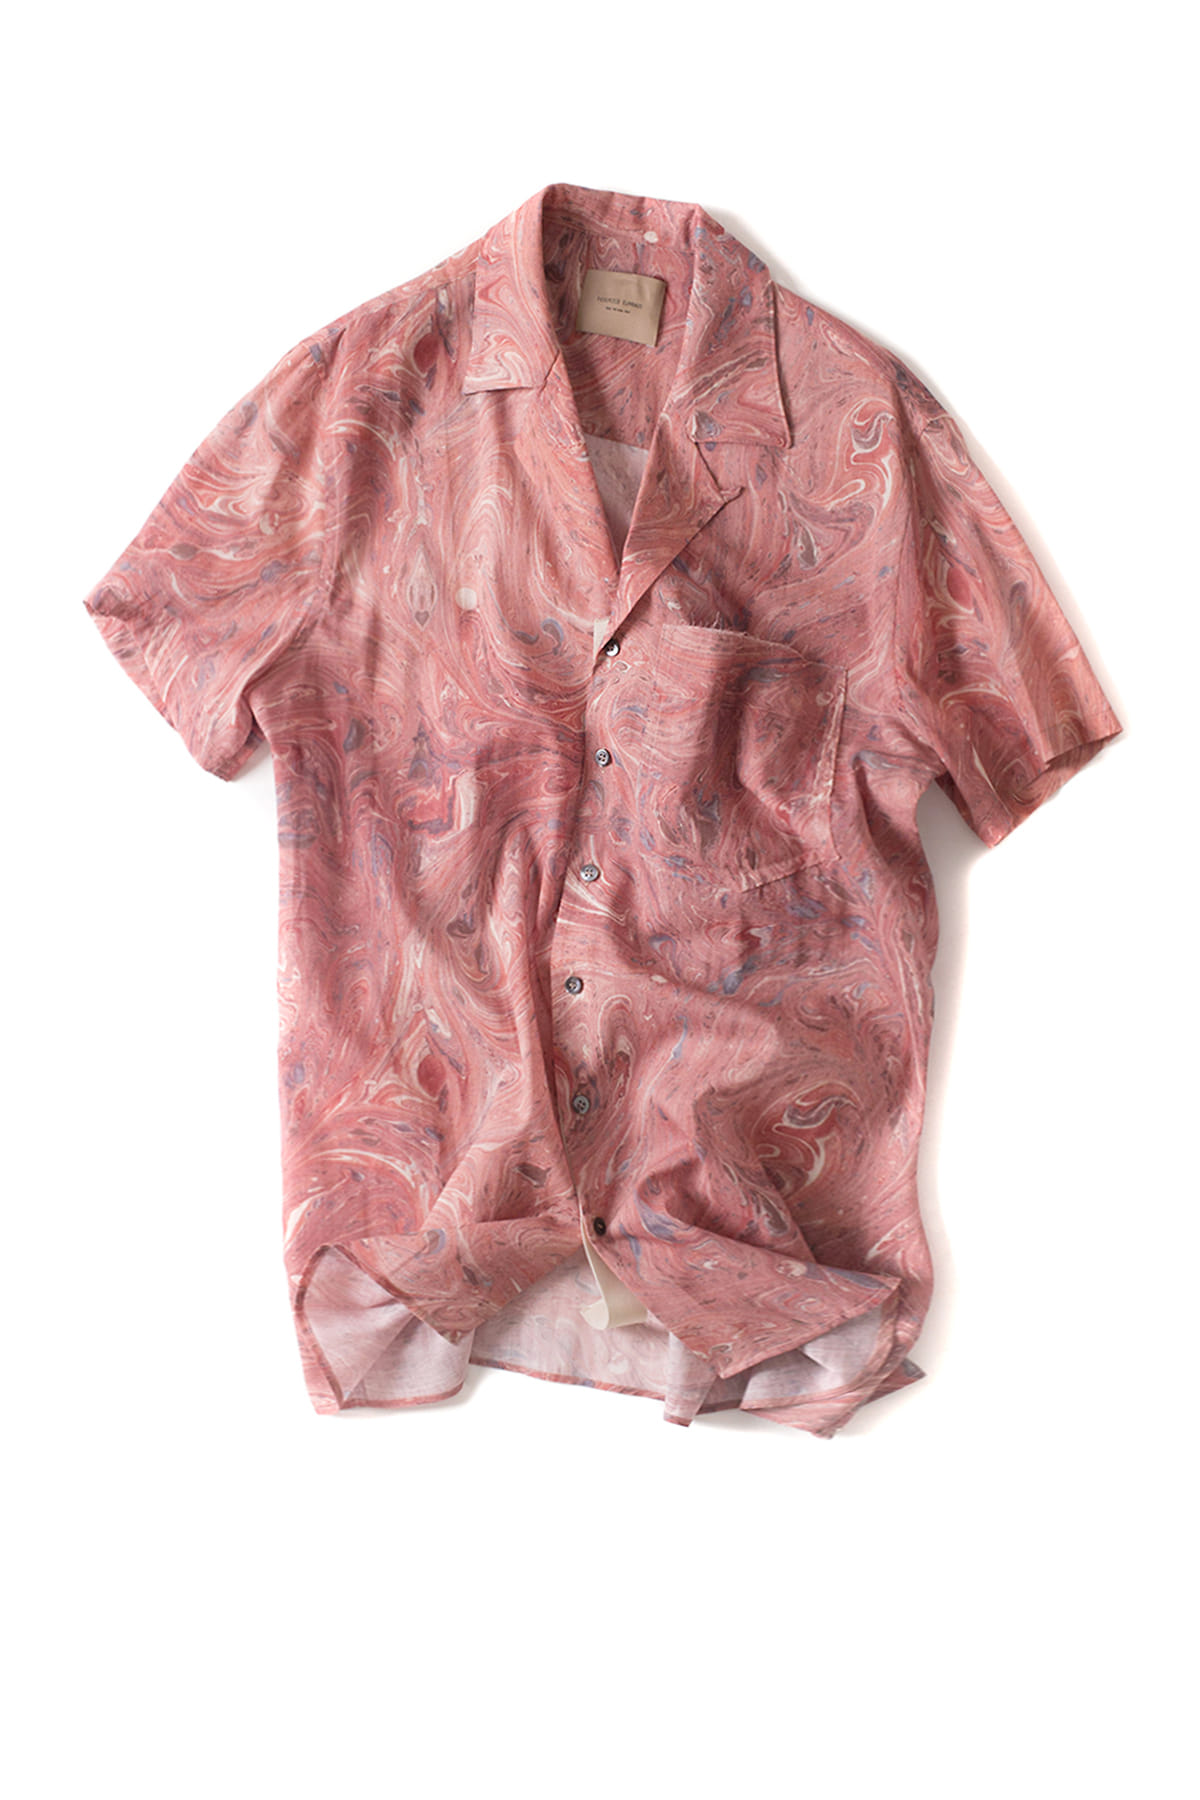 Federico Curradi : Short Sleeve Bowling Shirt (Pink)